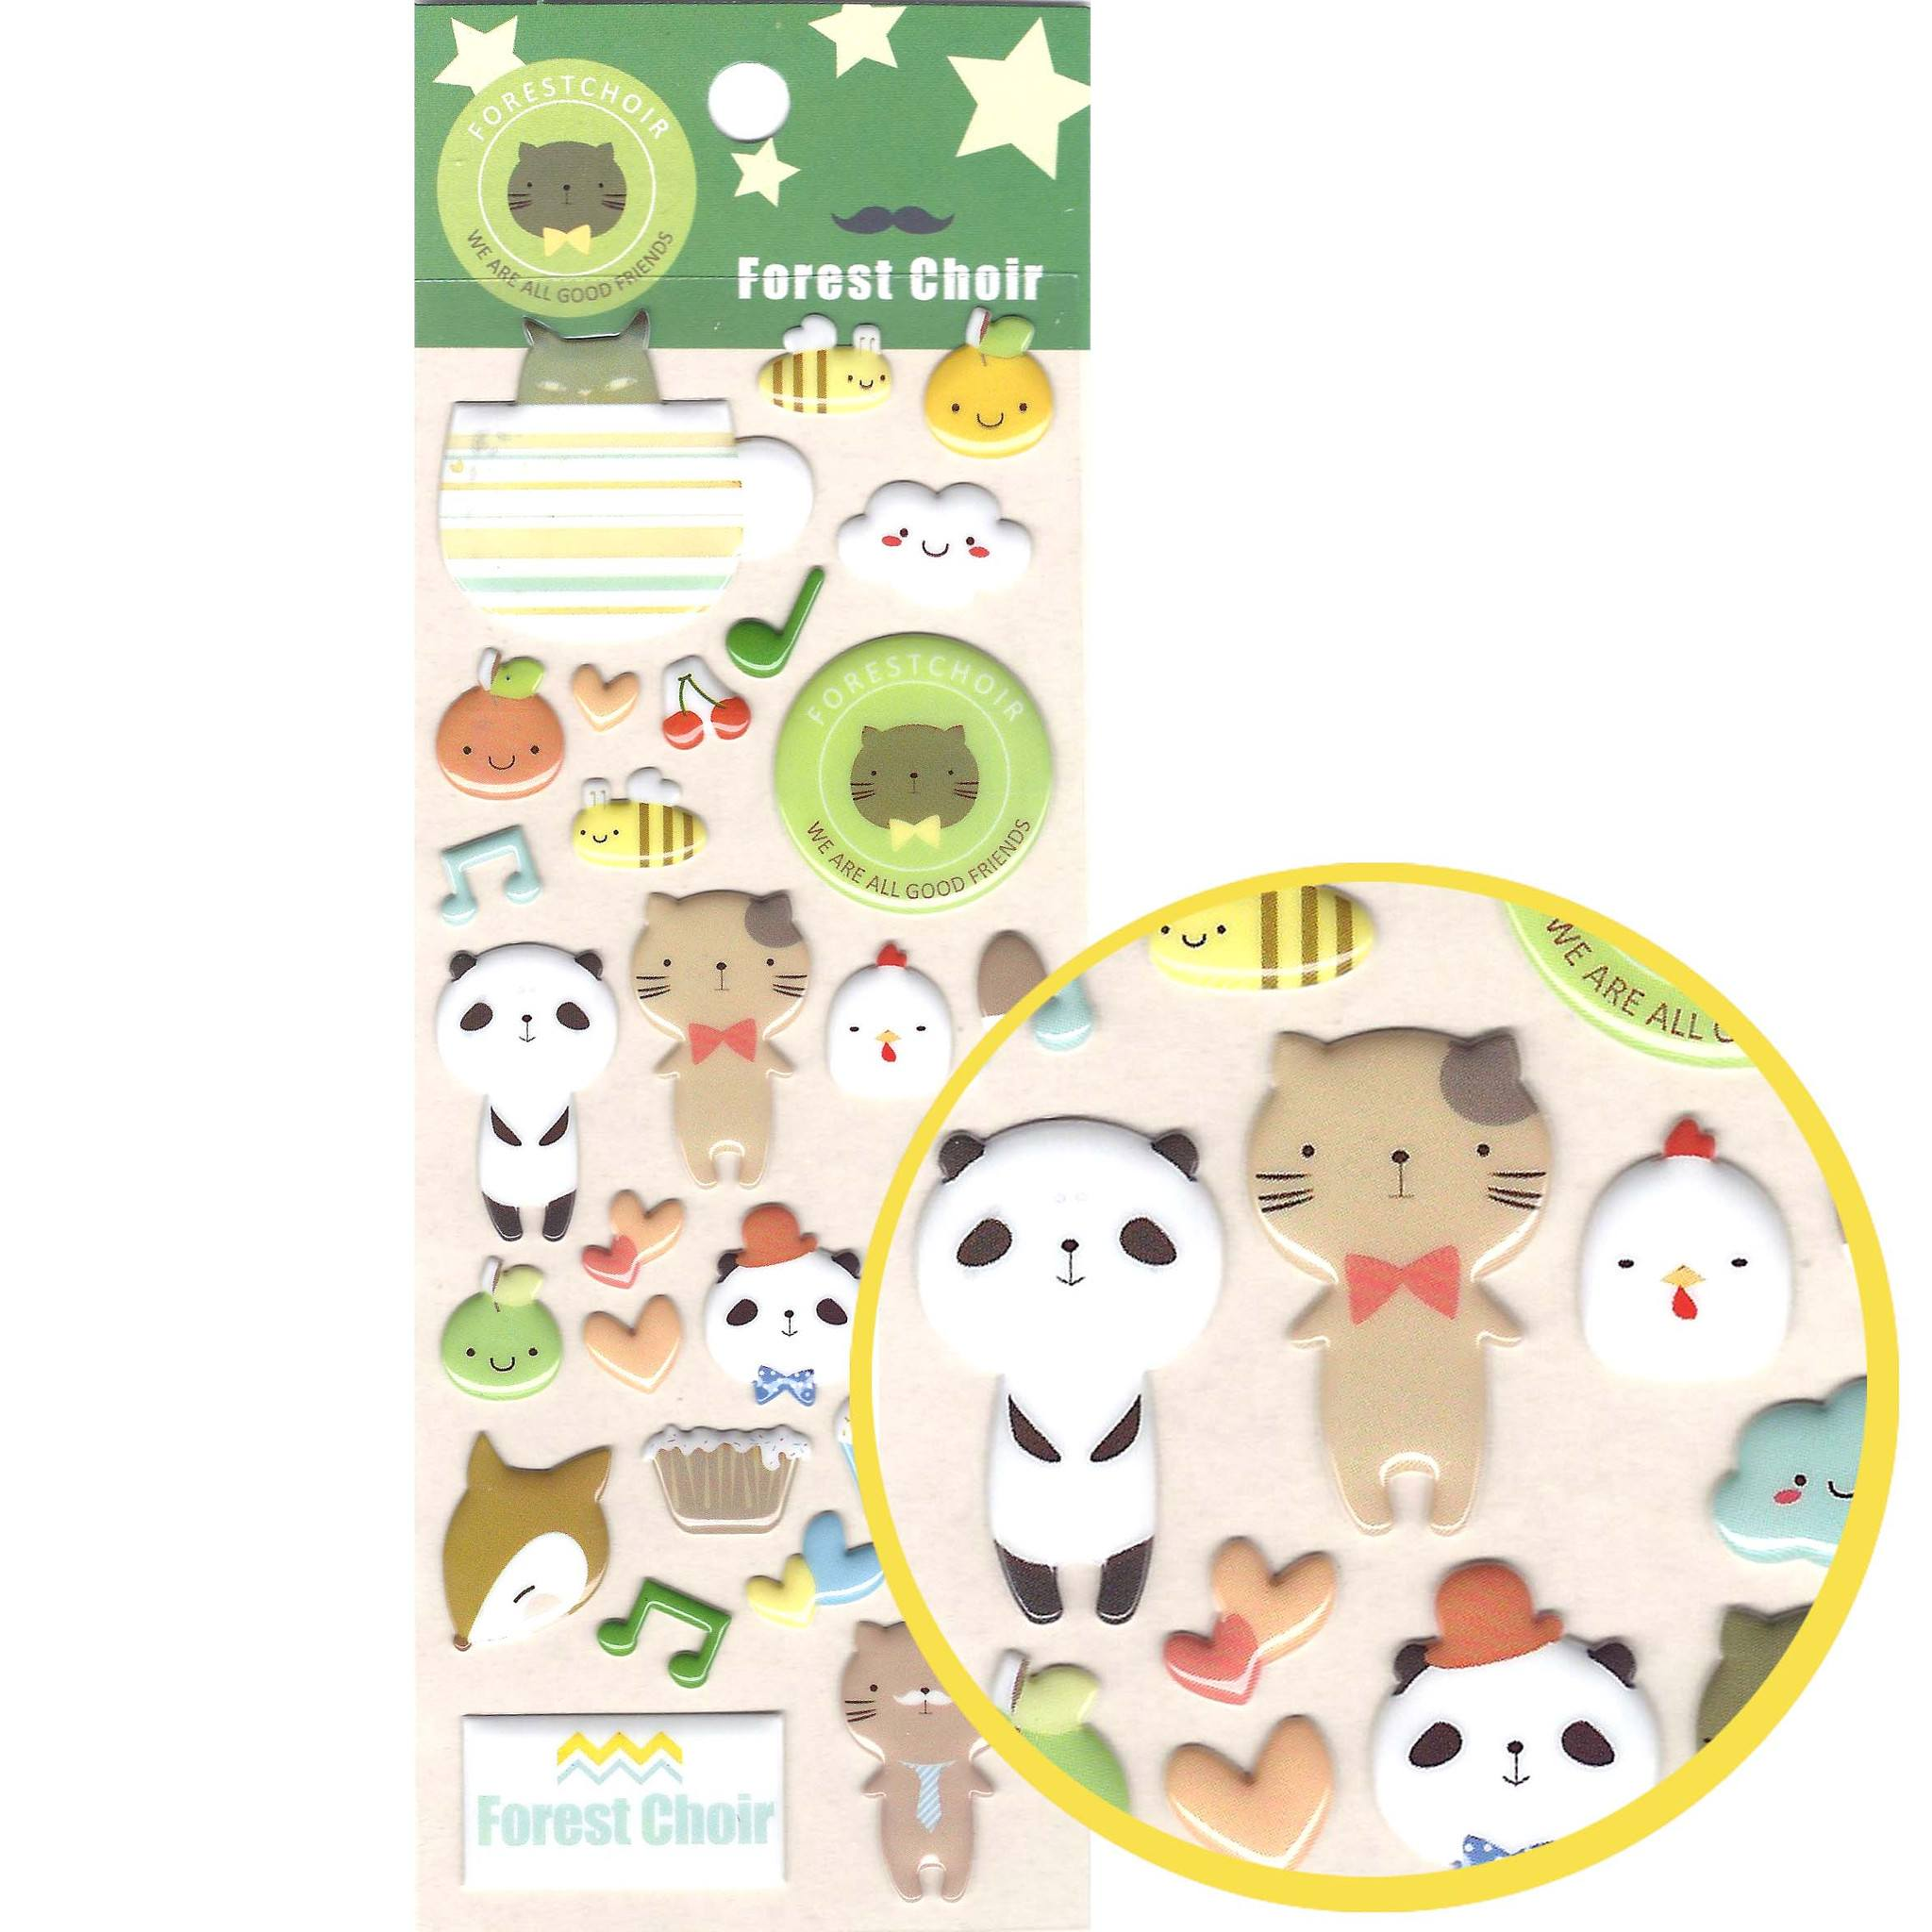 Cartoon Kitty Cat Panda Shaped Animal Puffy Stickers for Scrapbooking